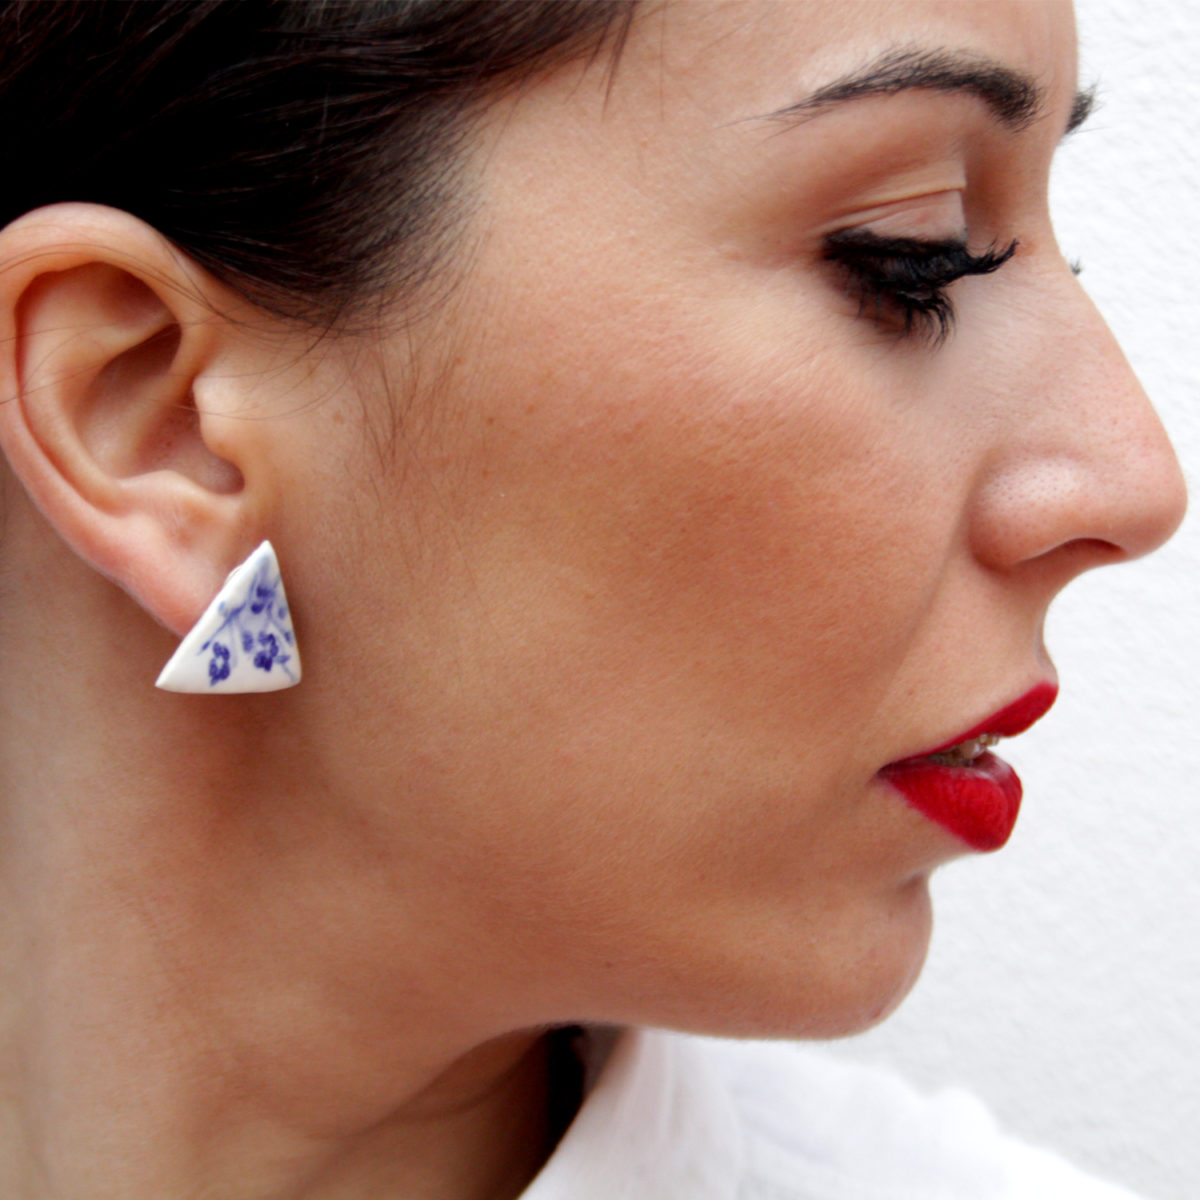 Pendientes de cerámica en triangulo minimalista Bowtery La Rambla flores azul y blanco Handmade ceramic earrings triangle minimalist blue and White flowers